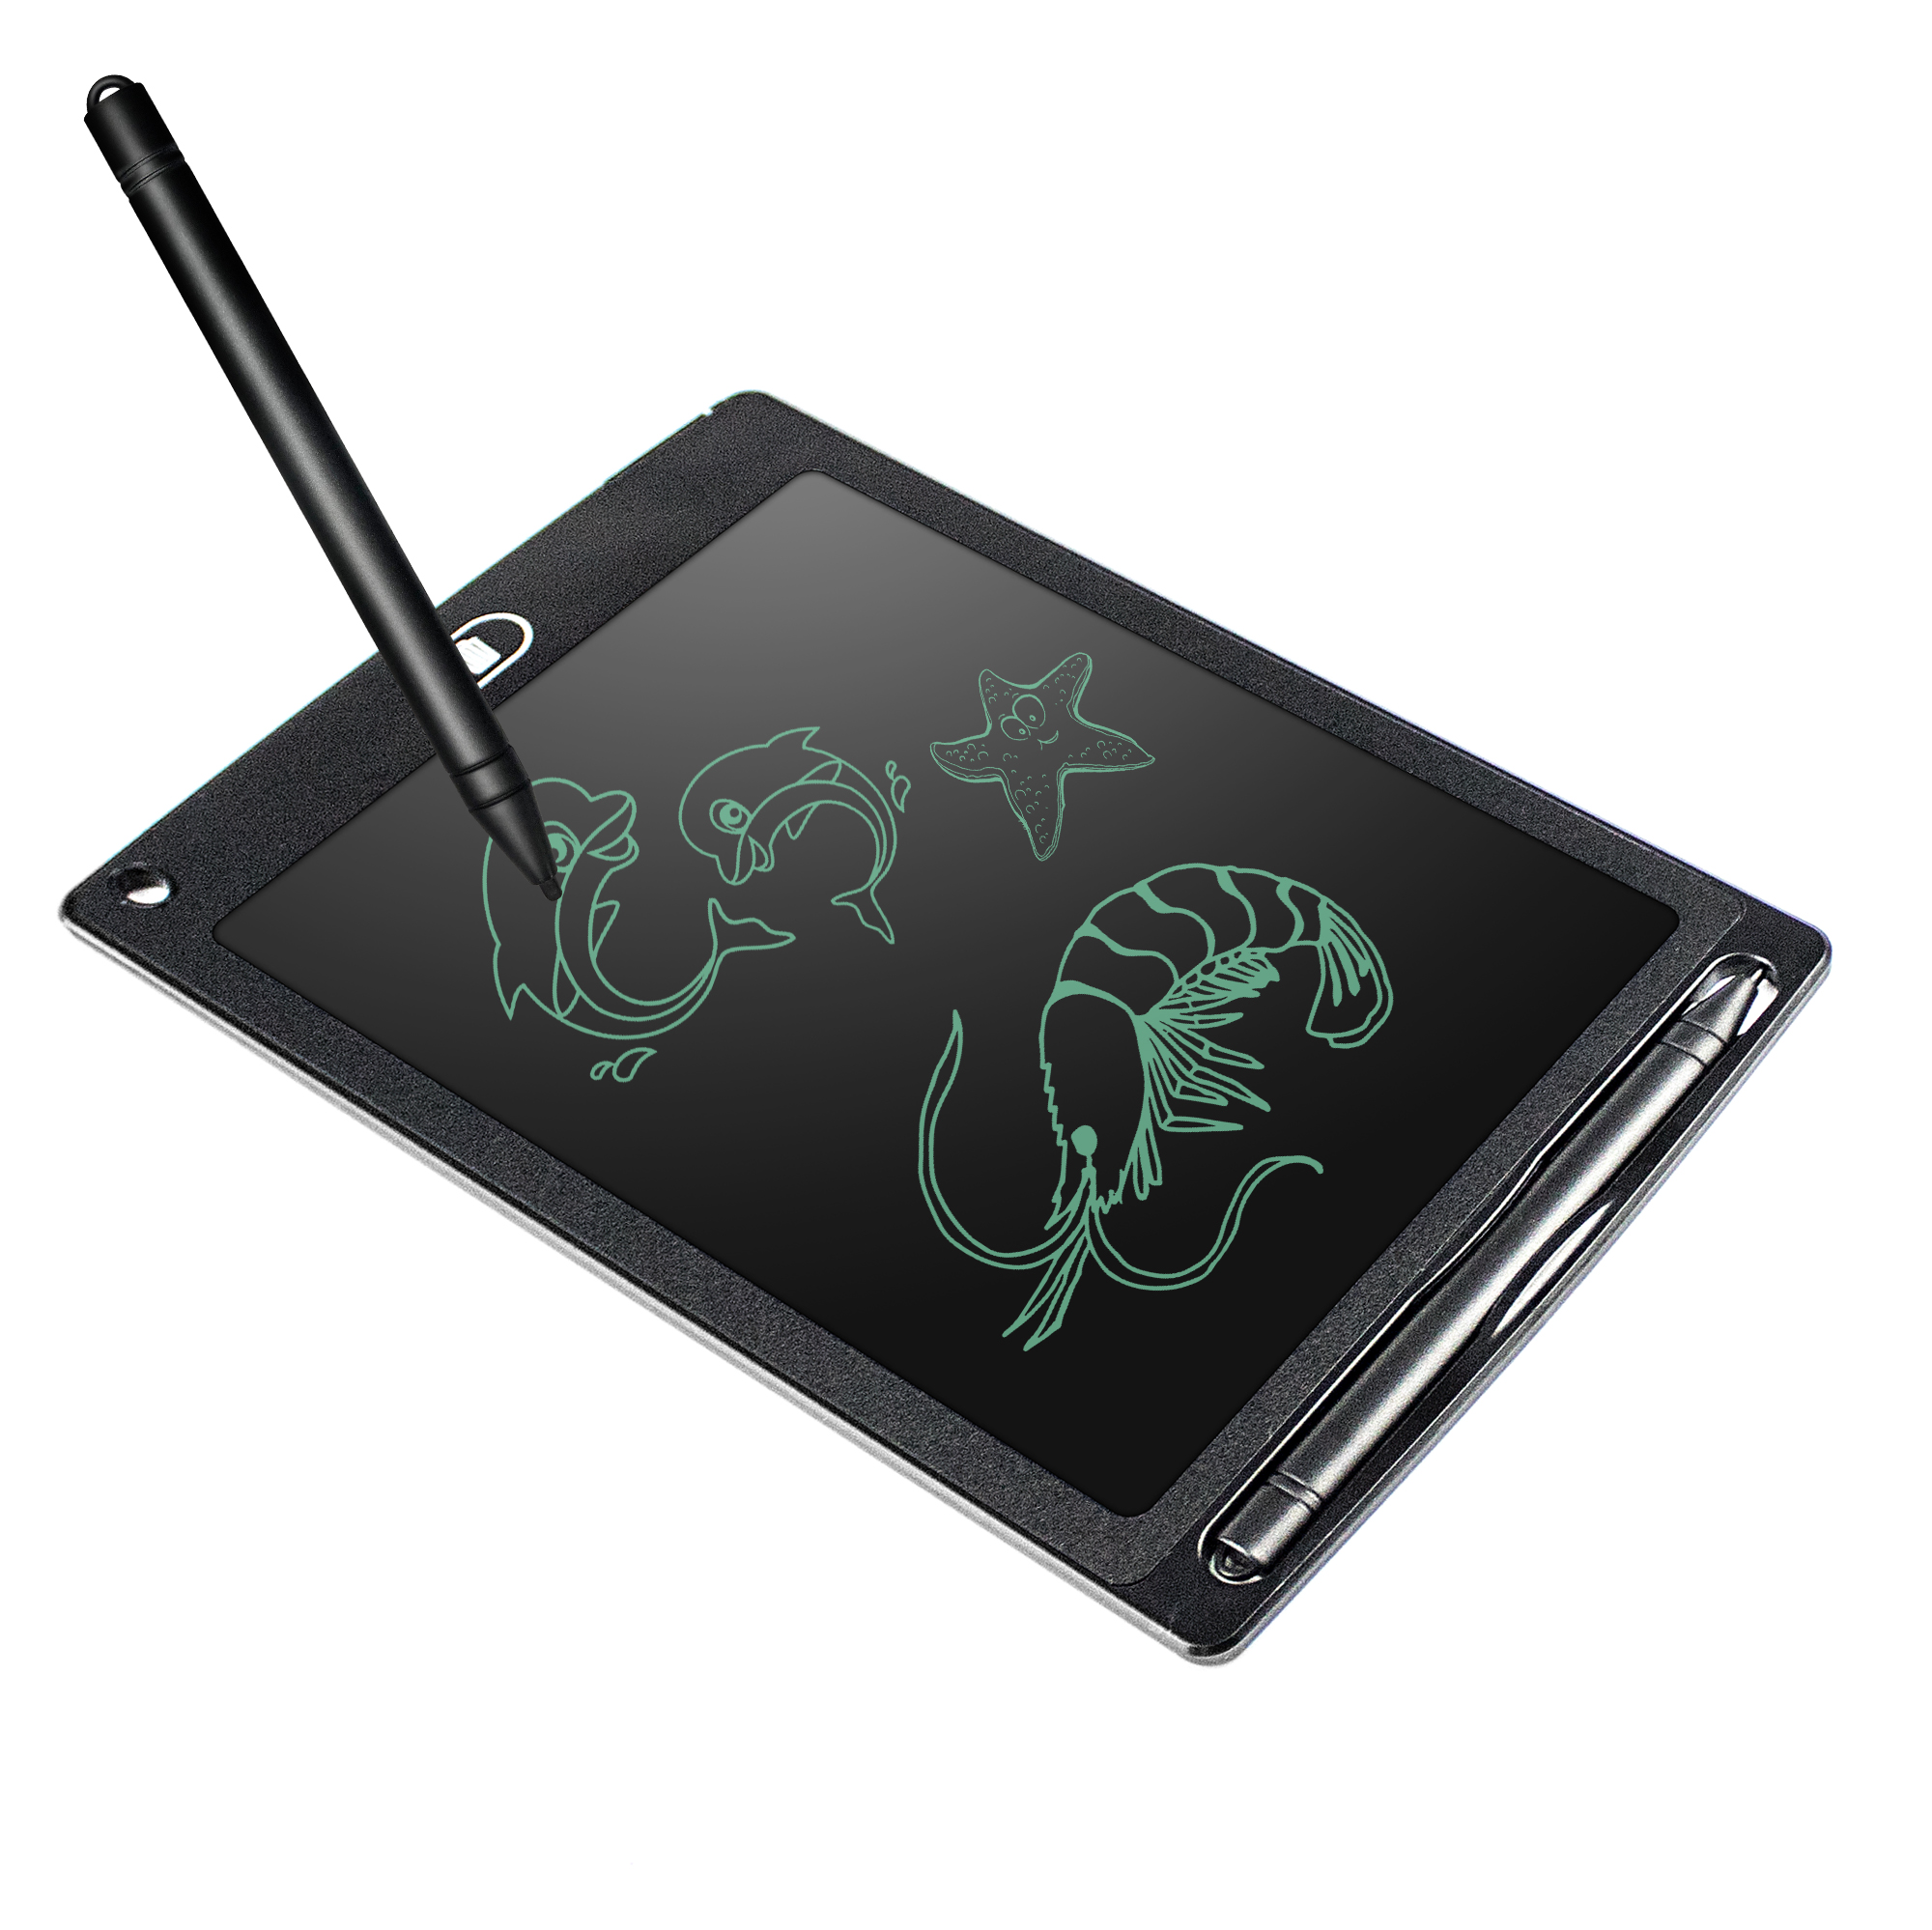 kids erasable drawing board/6colors 8.5 inch lcd writing tablet